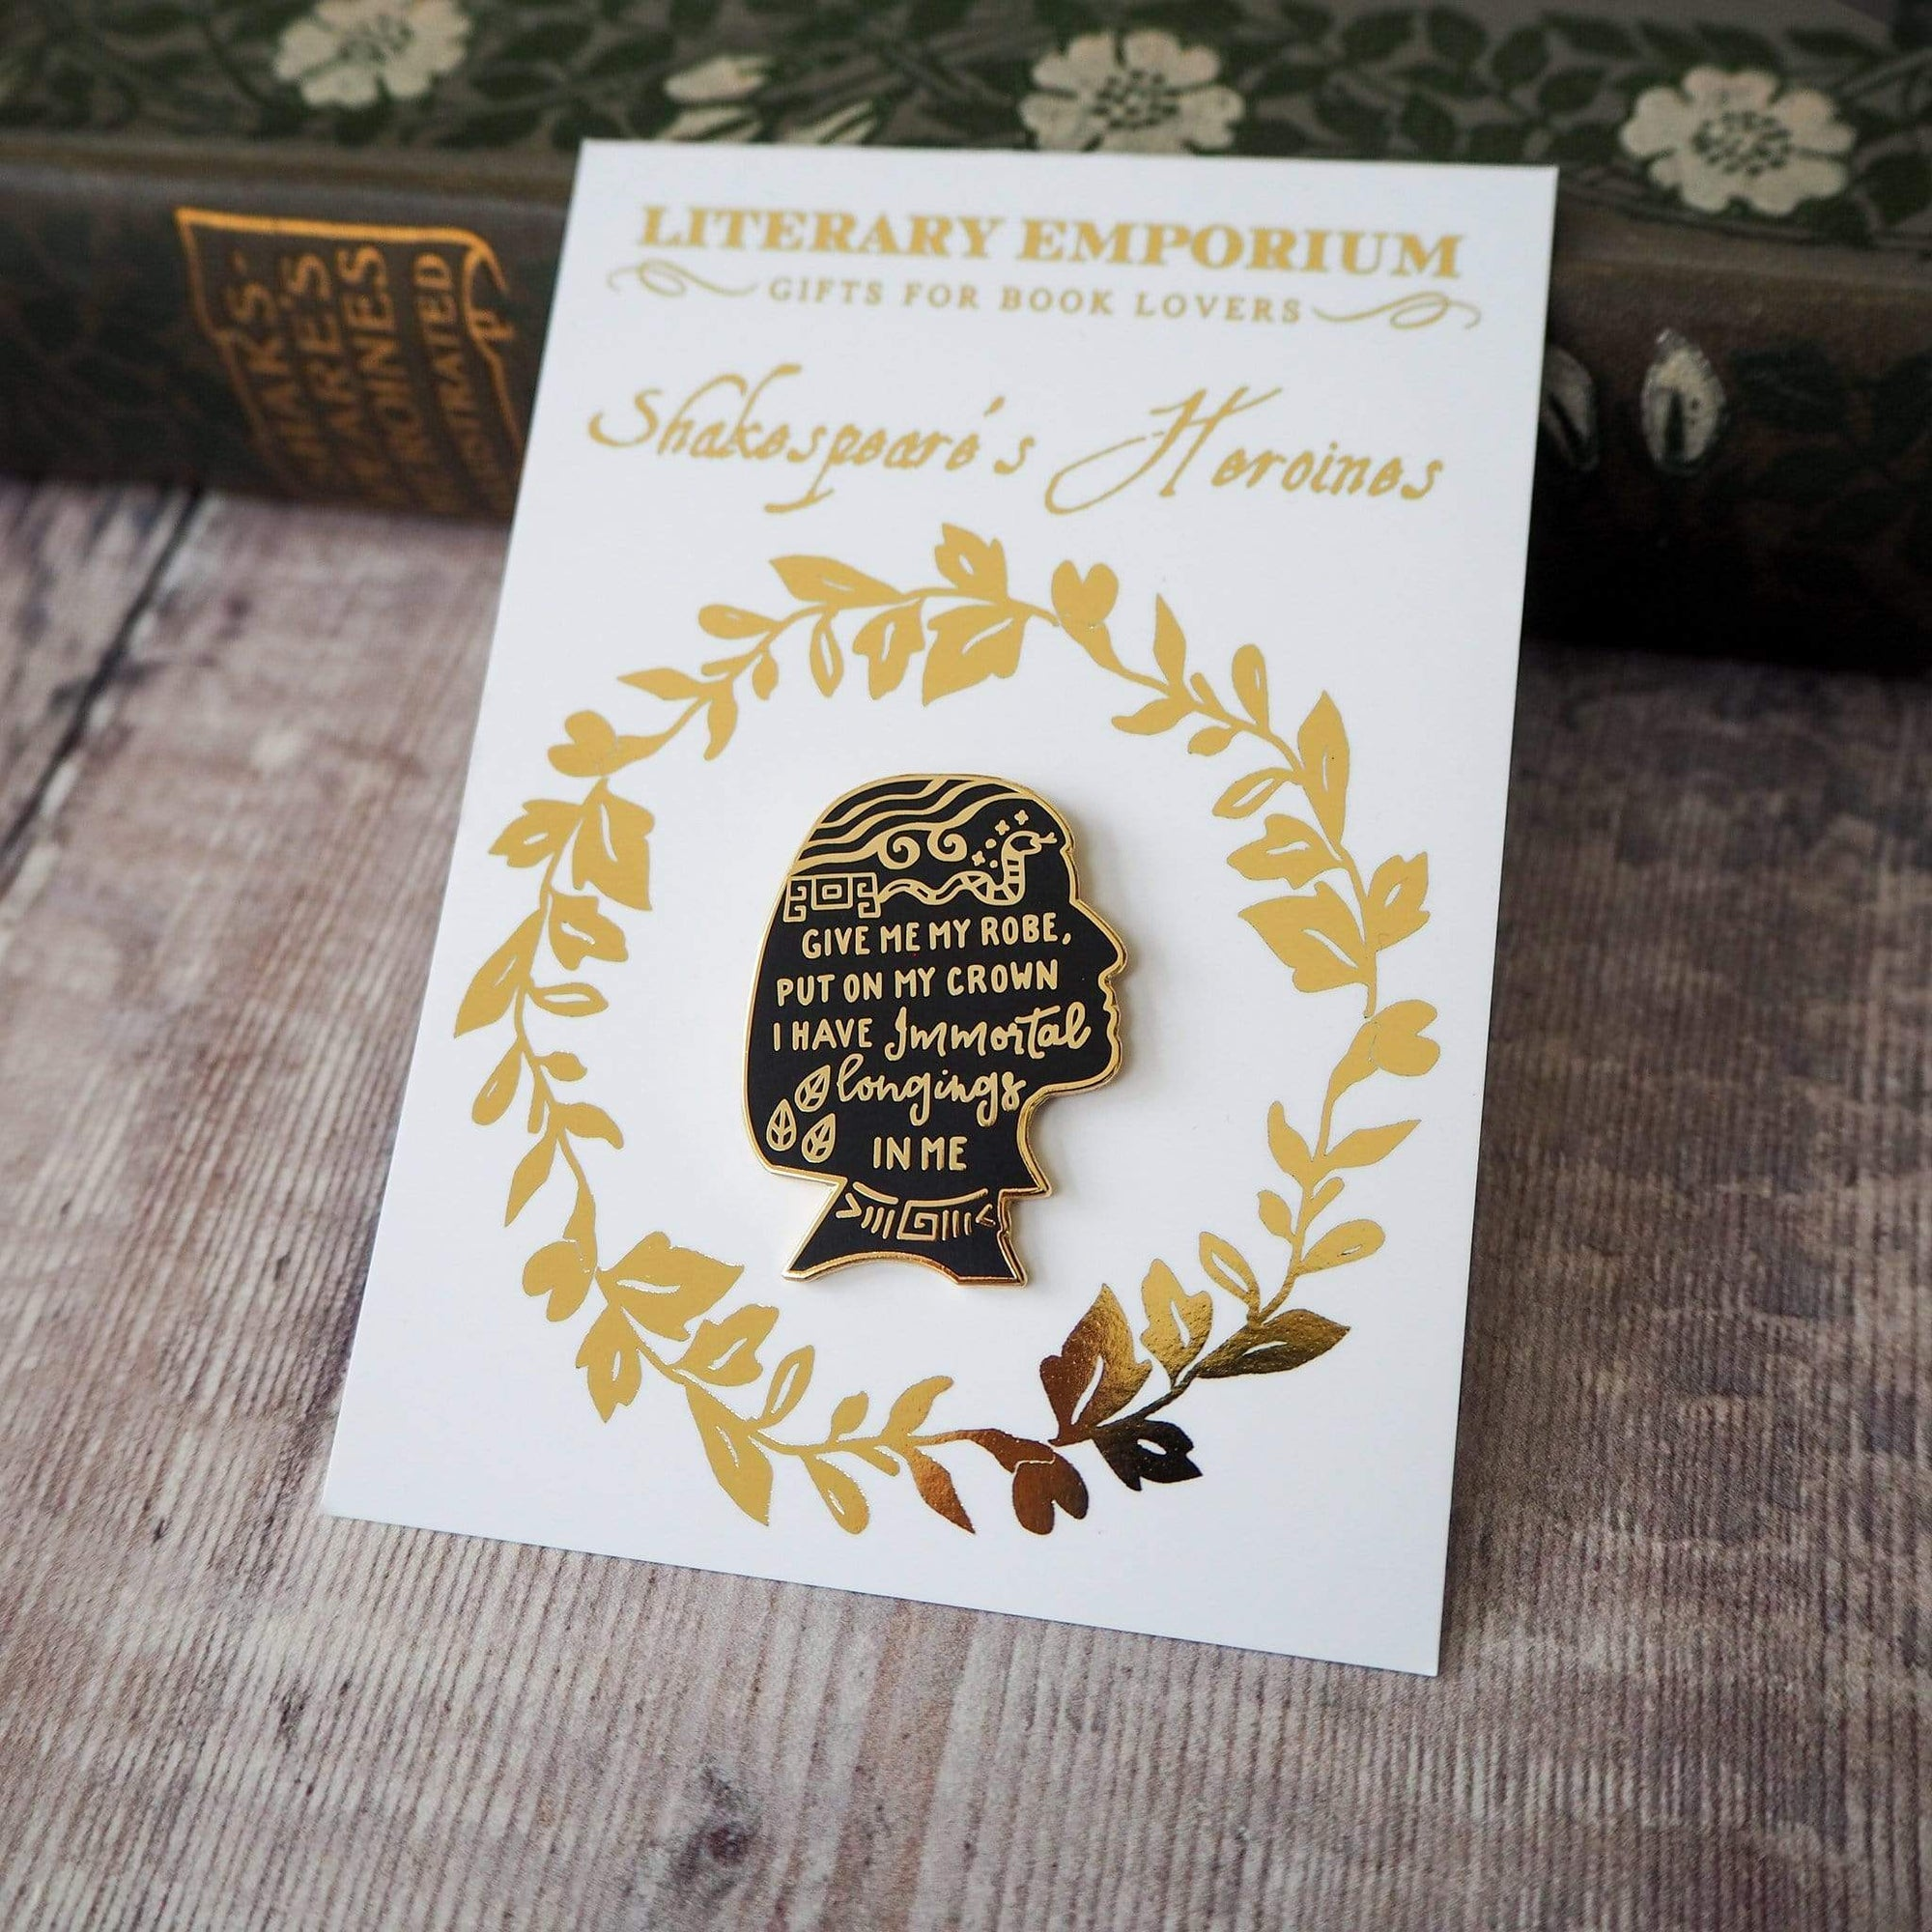 Cleopatra Shakespeare Enamel Pin BookGeek